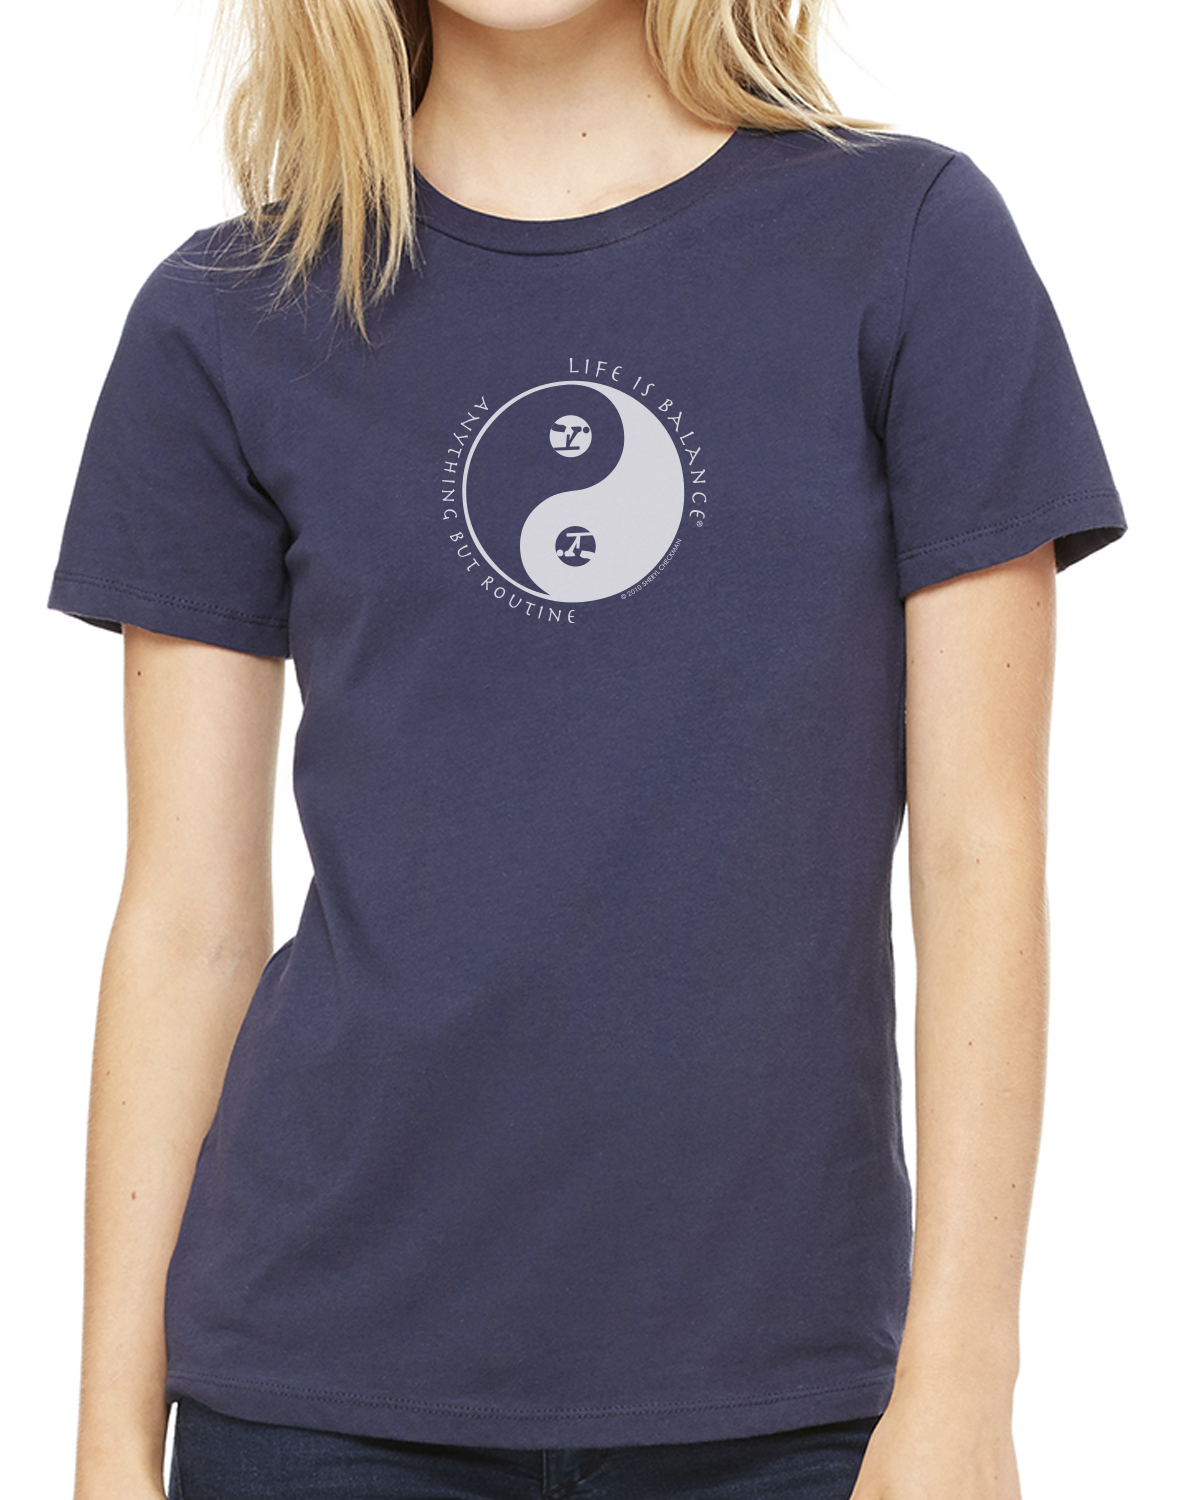 Women's short sleeve gymnastics t-shirt (navy)